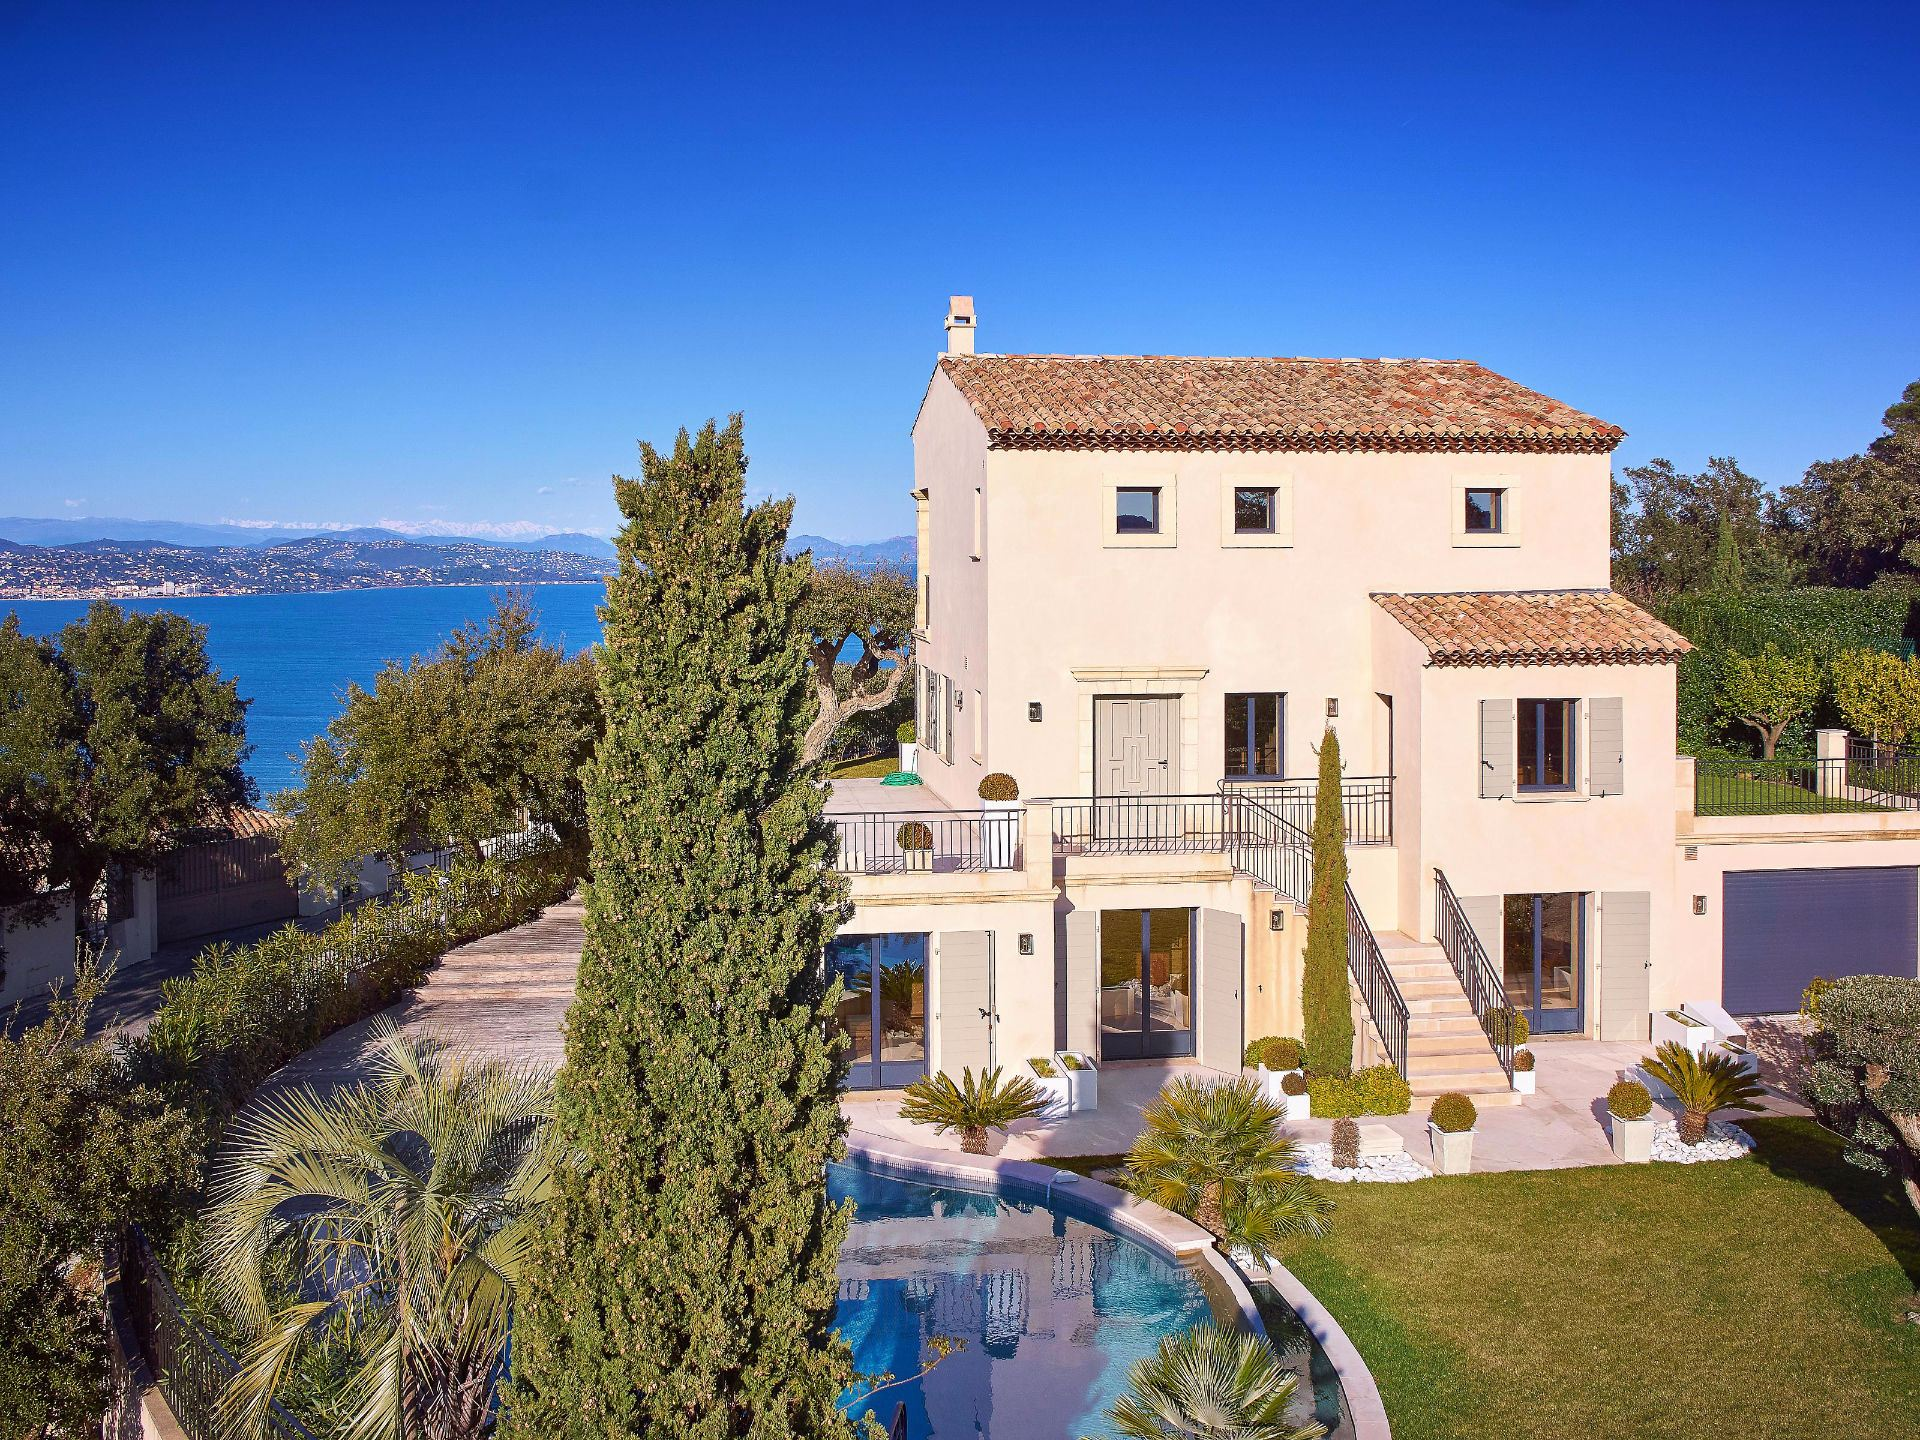 Single Family Home for Sale at Luxurious villa with breathtaking sea views over the golfe of Saint-Tropez Gassin, Provence-Alpes-Cote D'Azur, 83580 France